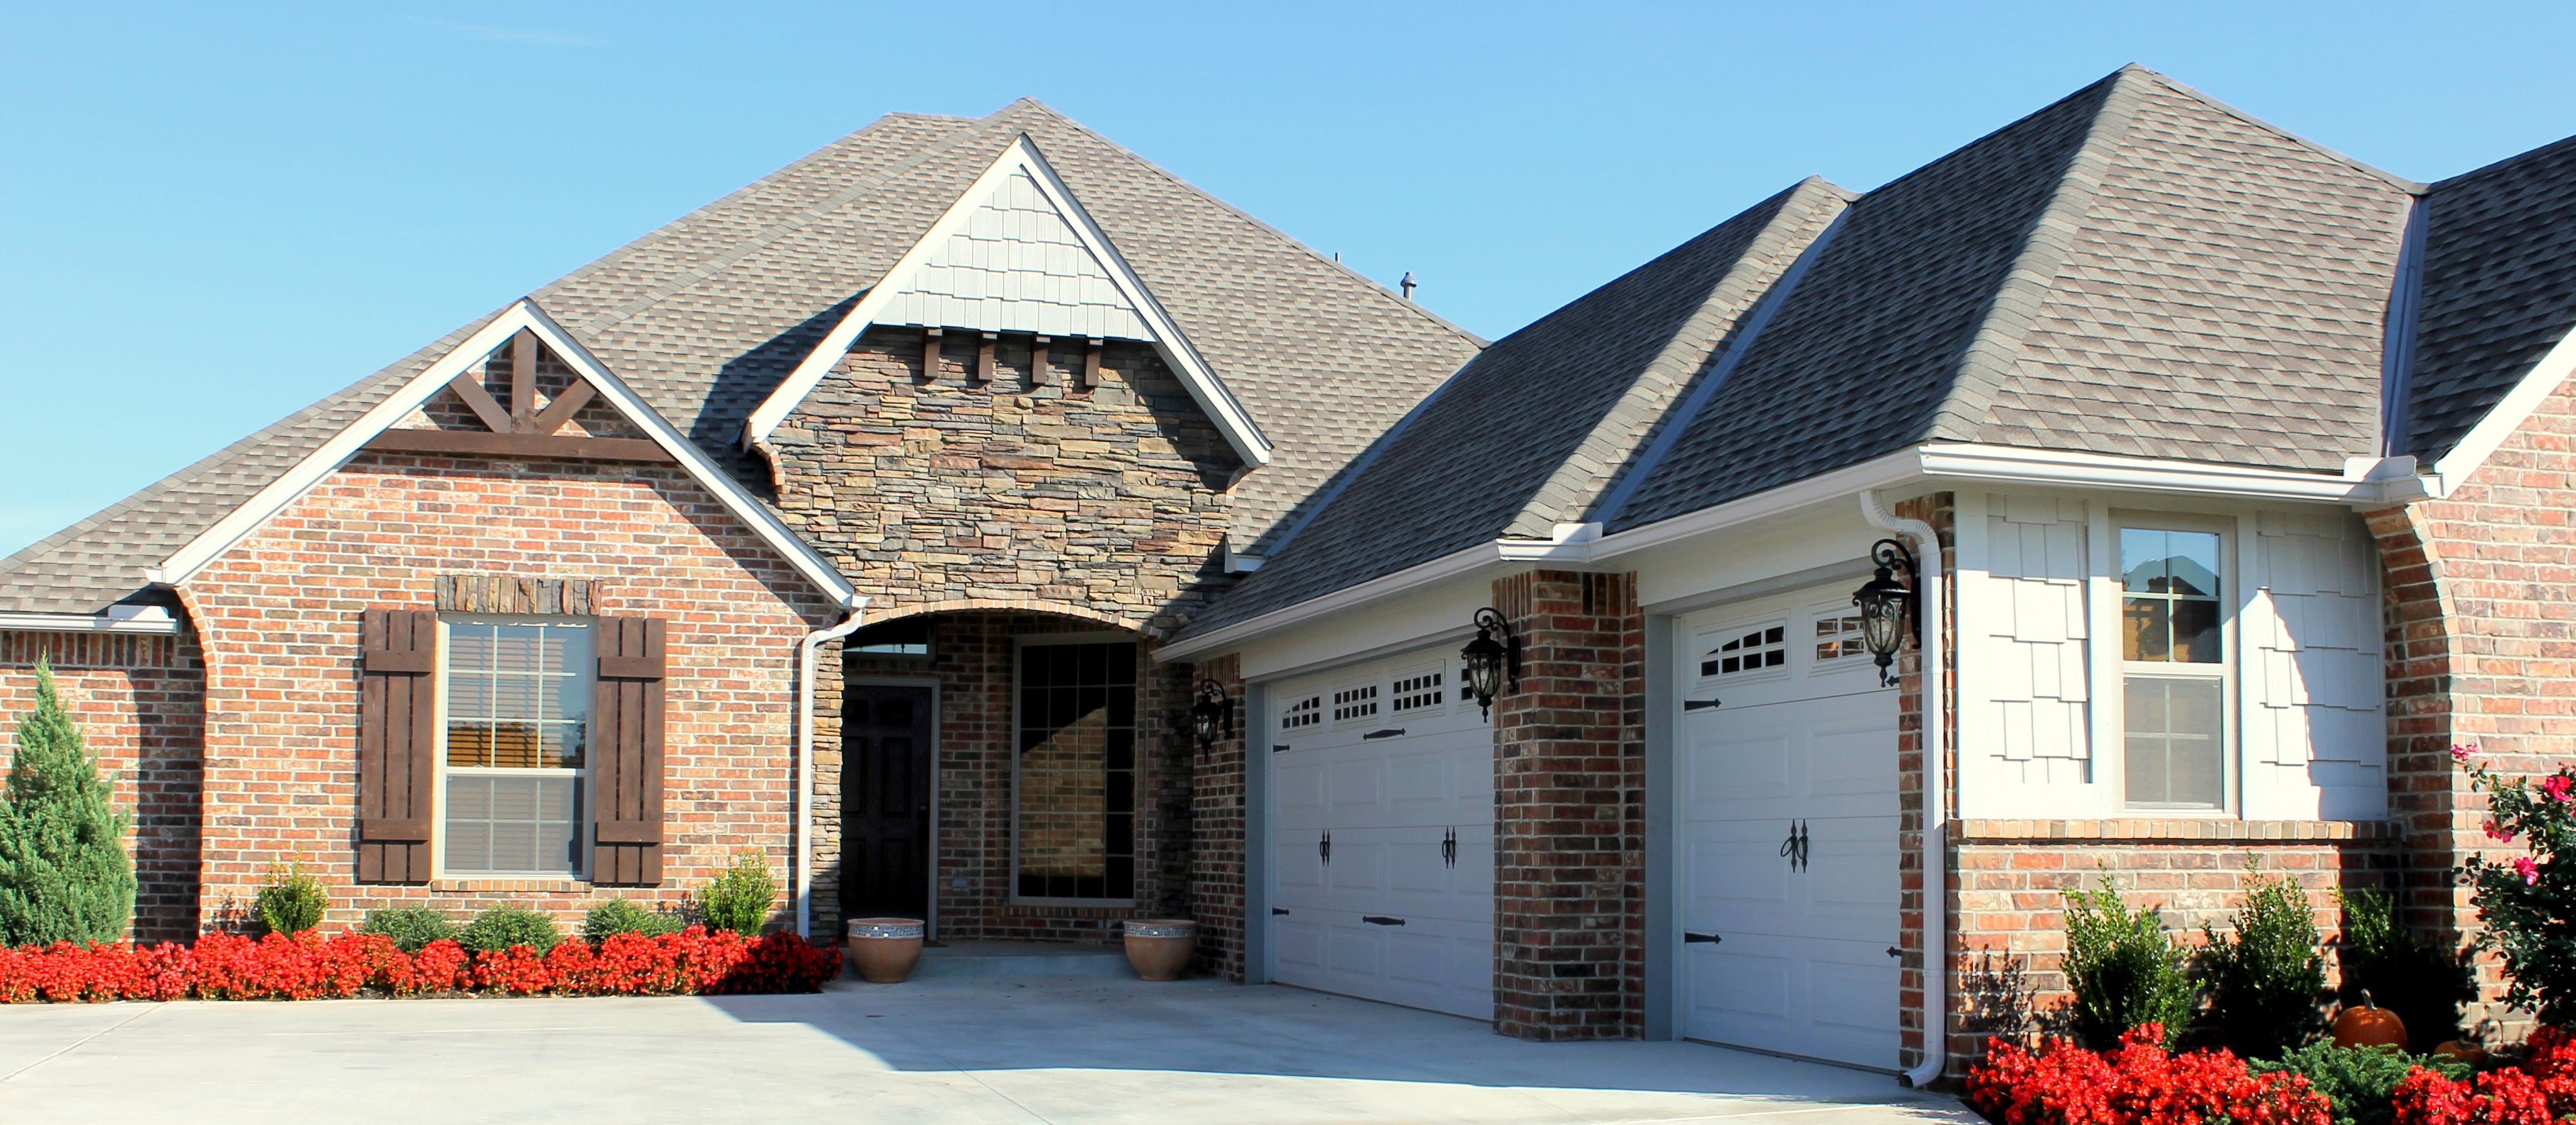 Garage Builders Okc Home Builders Brick Homes Traditional Home Design Curb